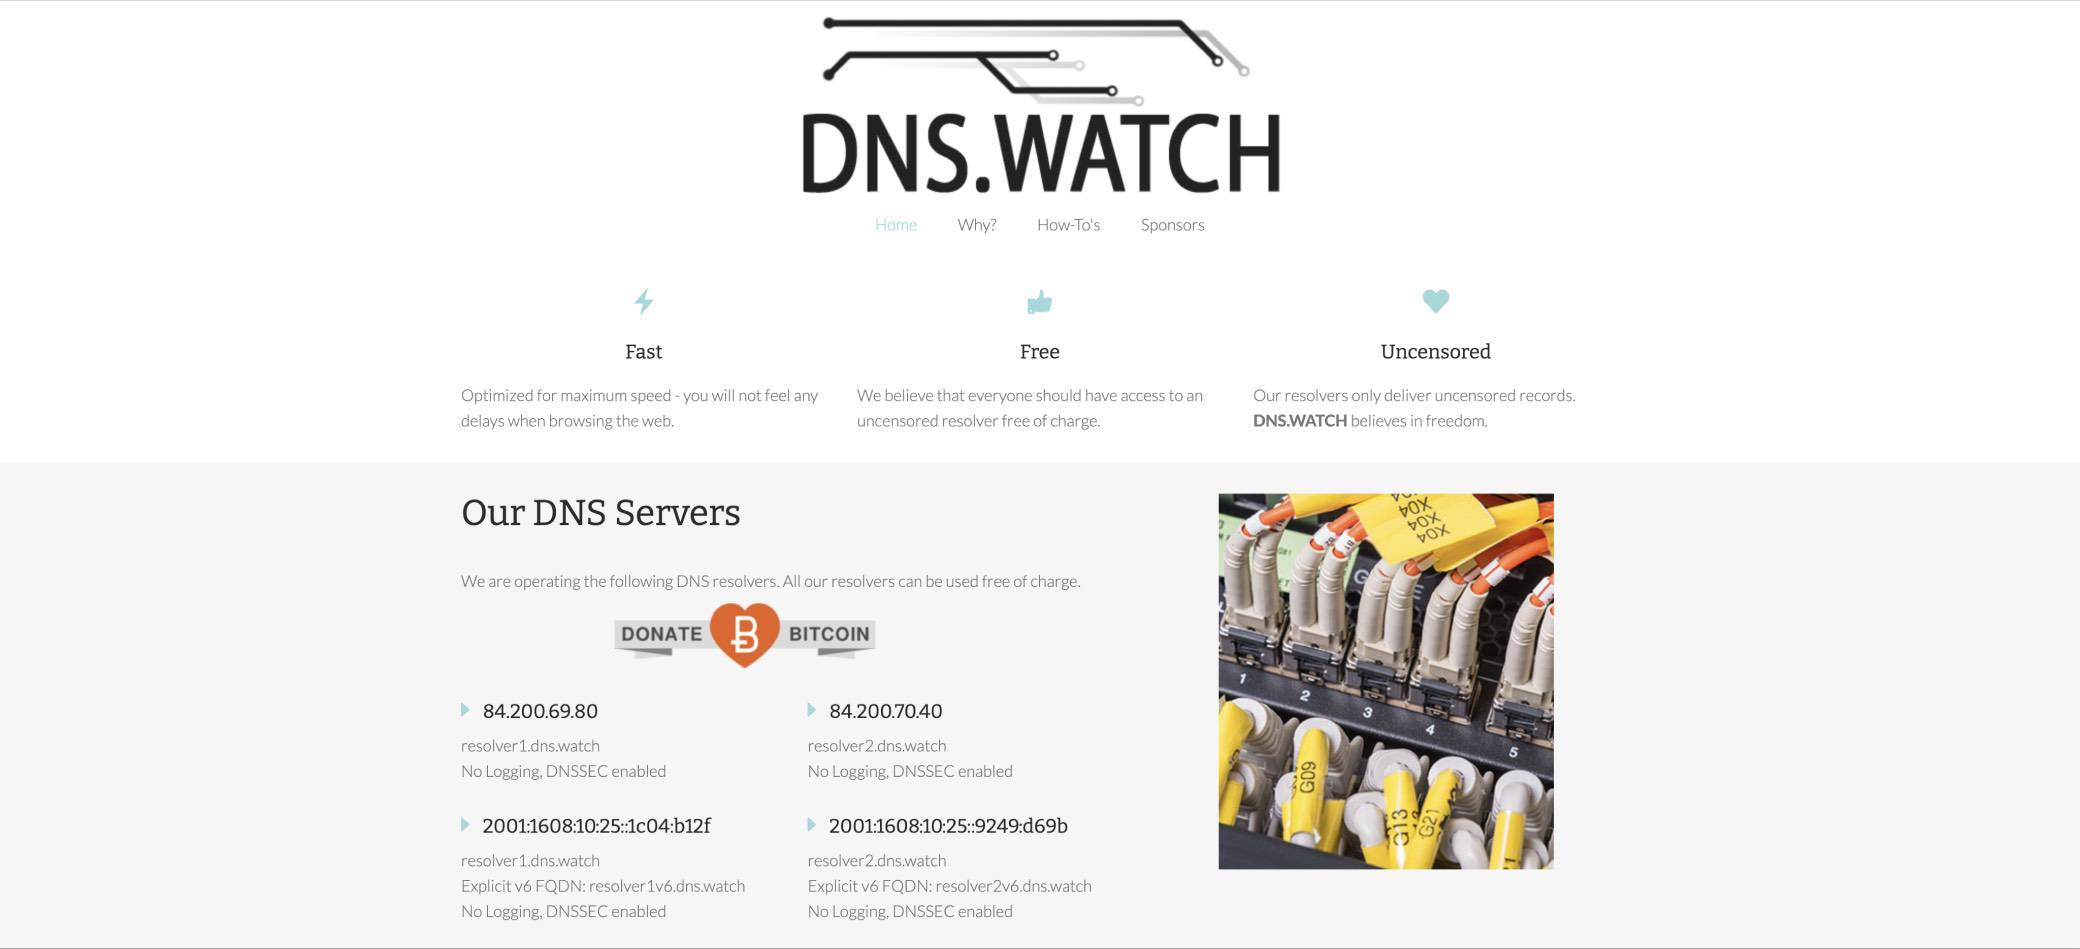 dns-watch image